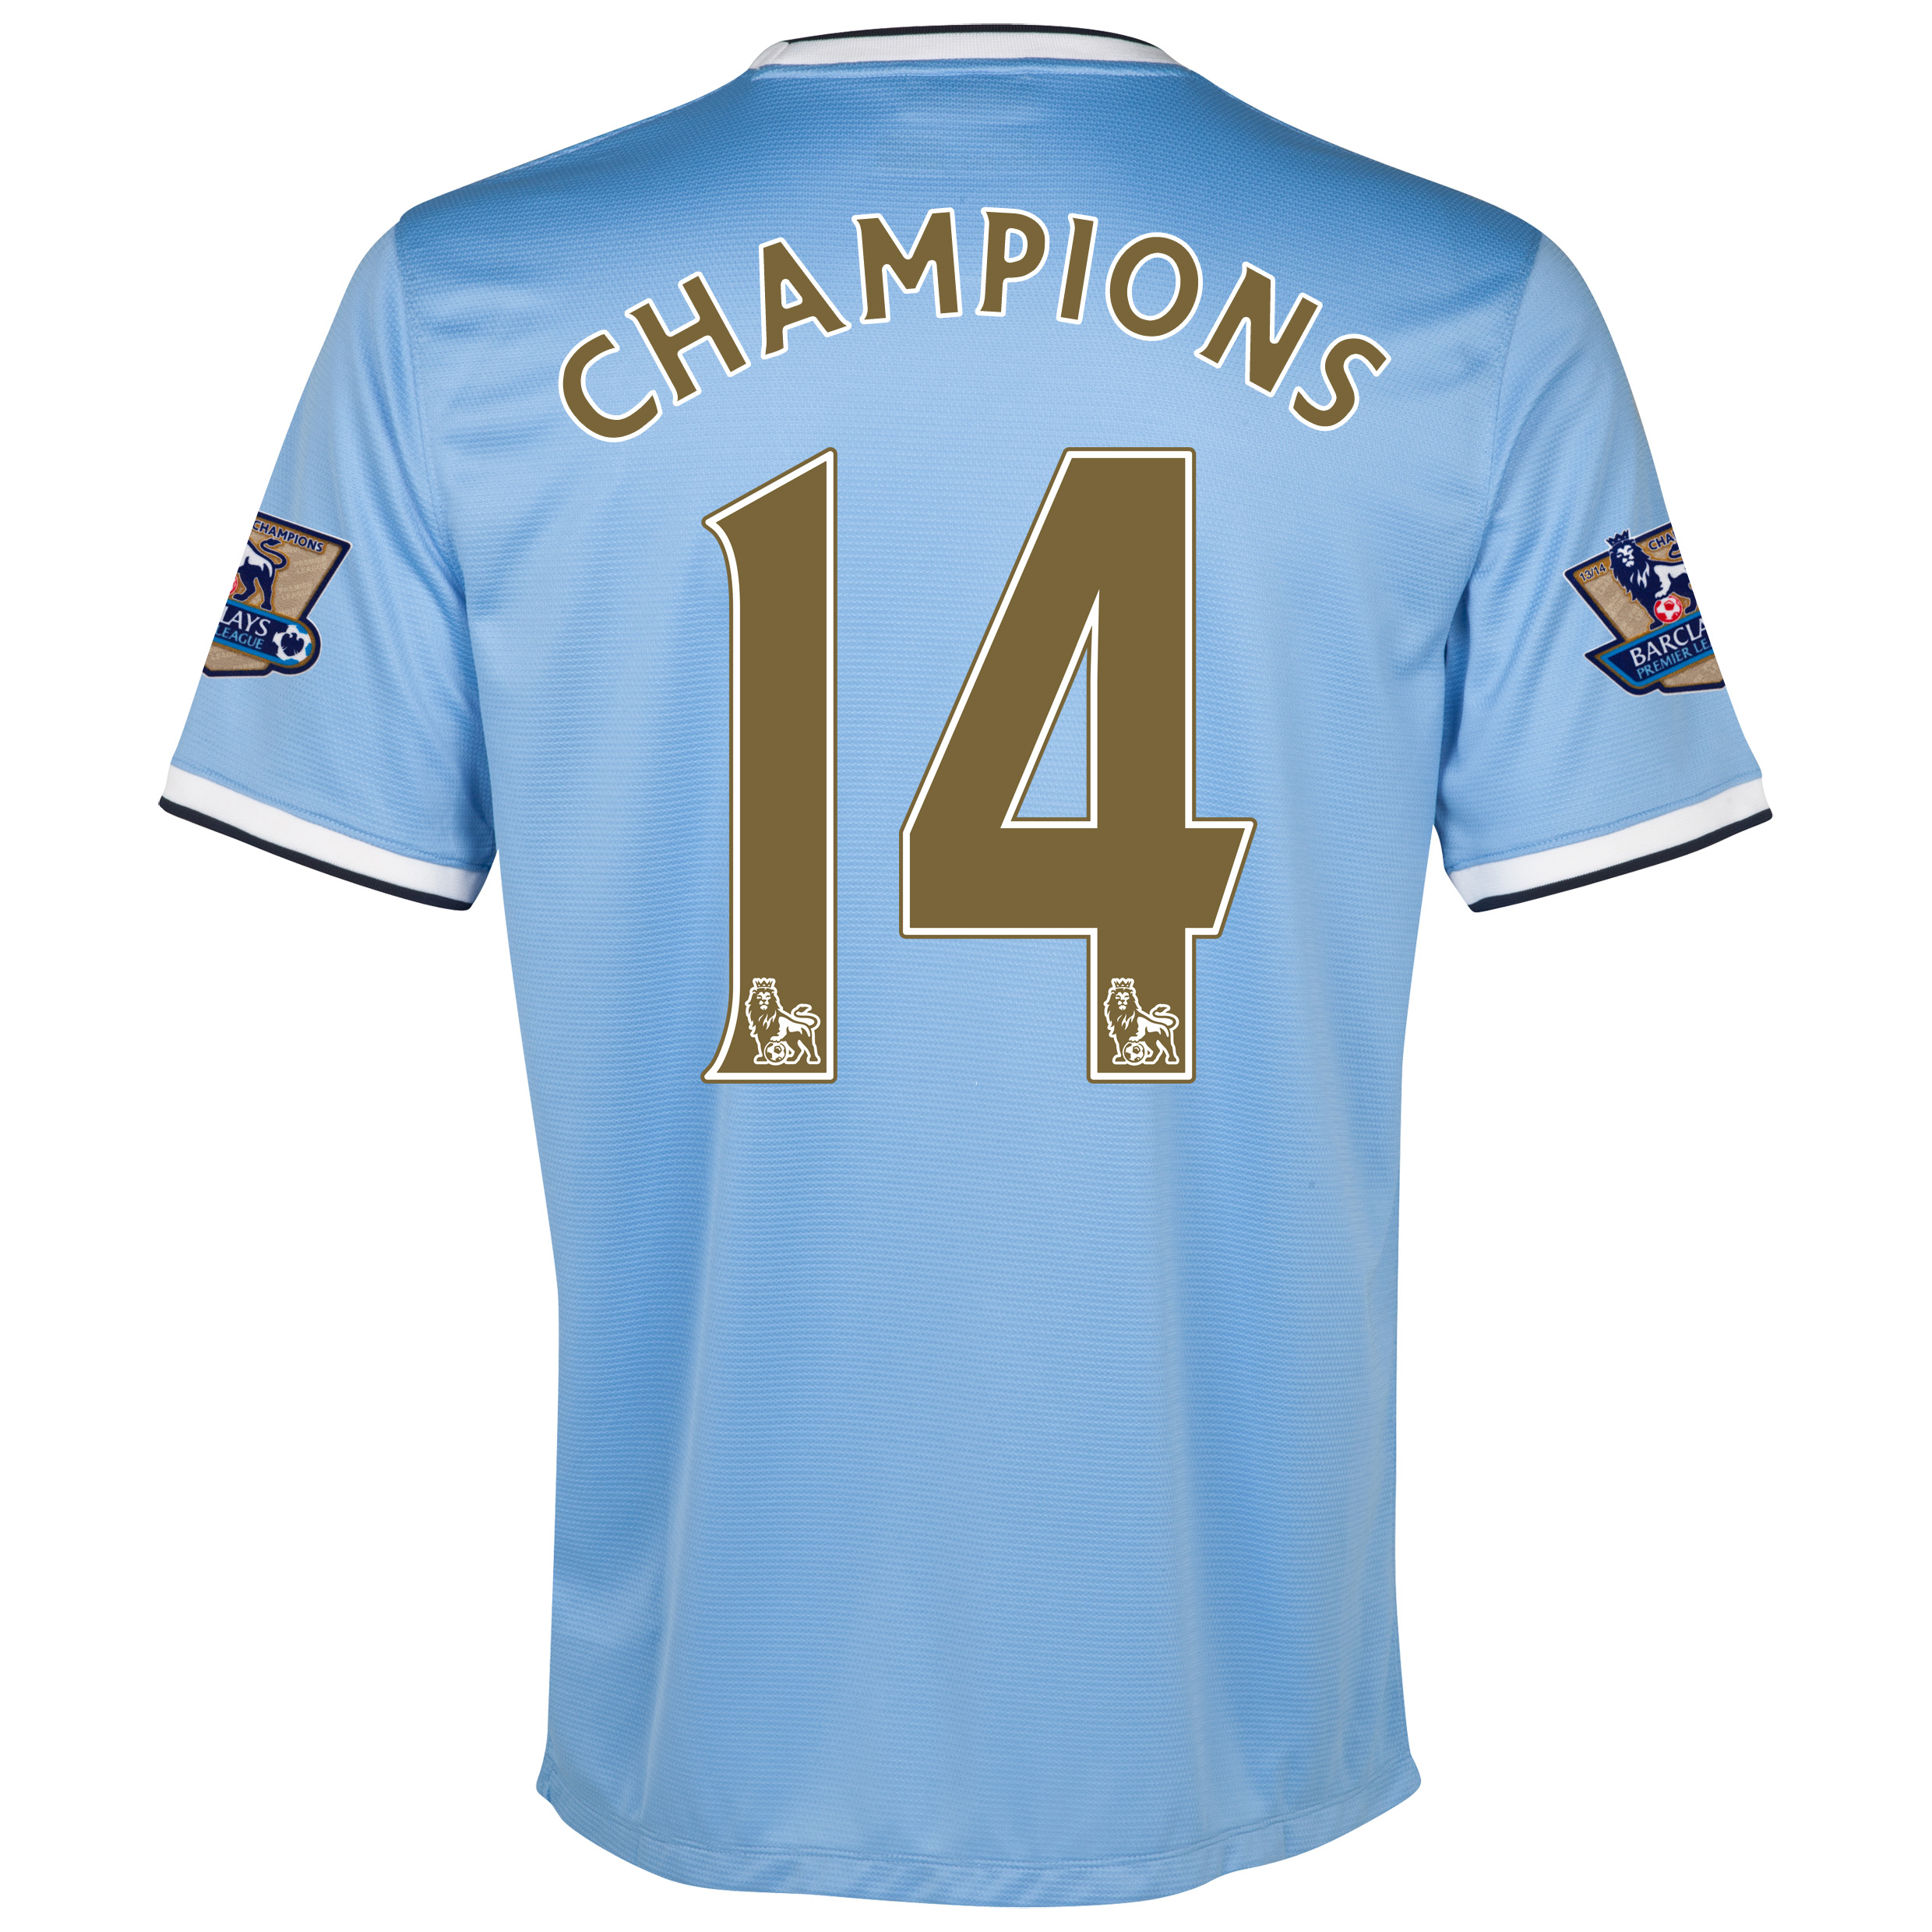 Manchester City Home Shirt 2013/14 with Champions 14 Printing including Champions Badges - Junior